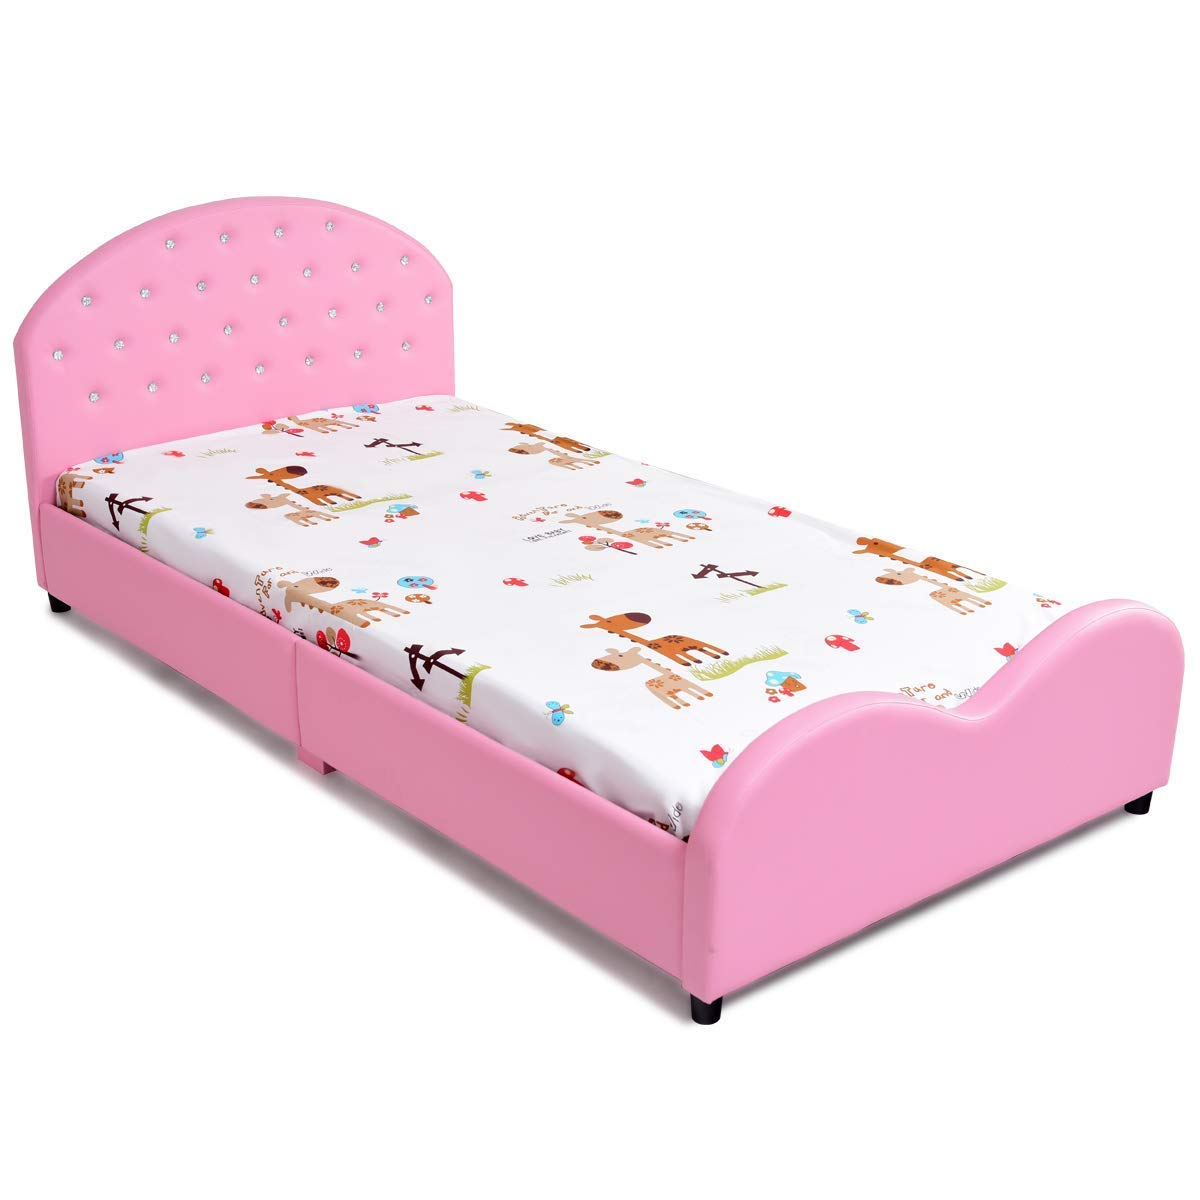 Costzon Kids Bed, Upholstered Platform, Wood Bedframe, Sleeping Bedroom Furniture, Perfect for Teens & Boys, Blue